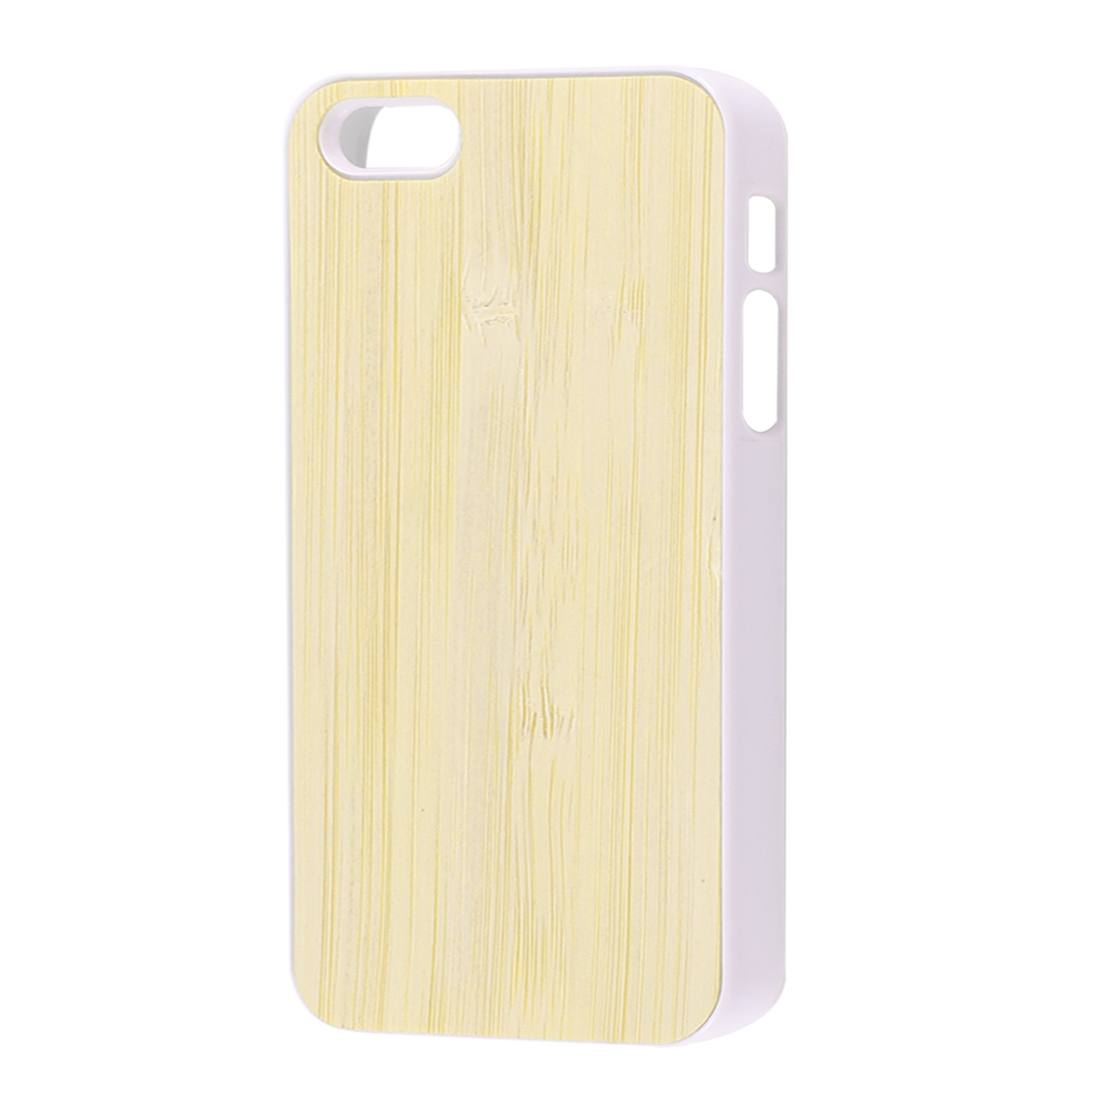 Bamboo Pattern Plastic Protector Case Cover White Beige for iPhone 5 5G